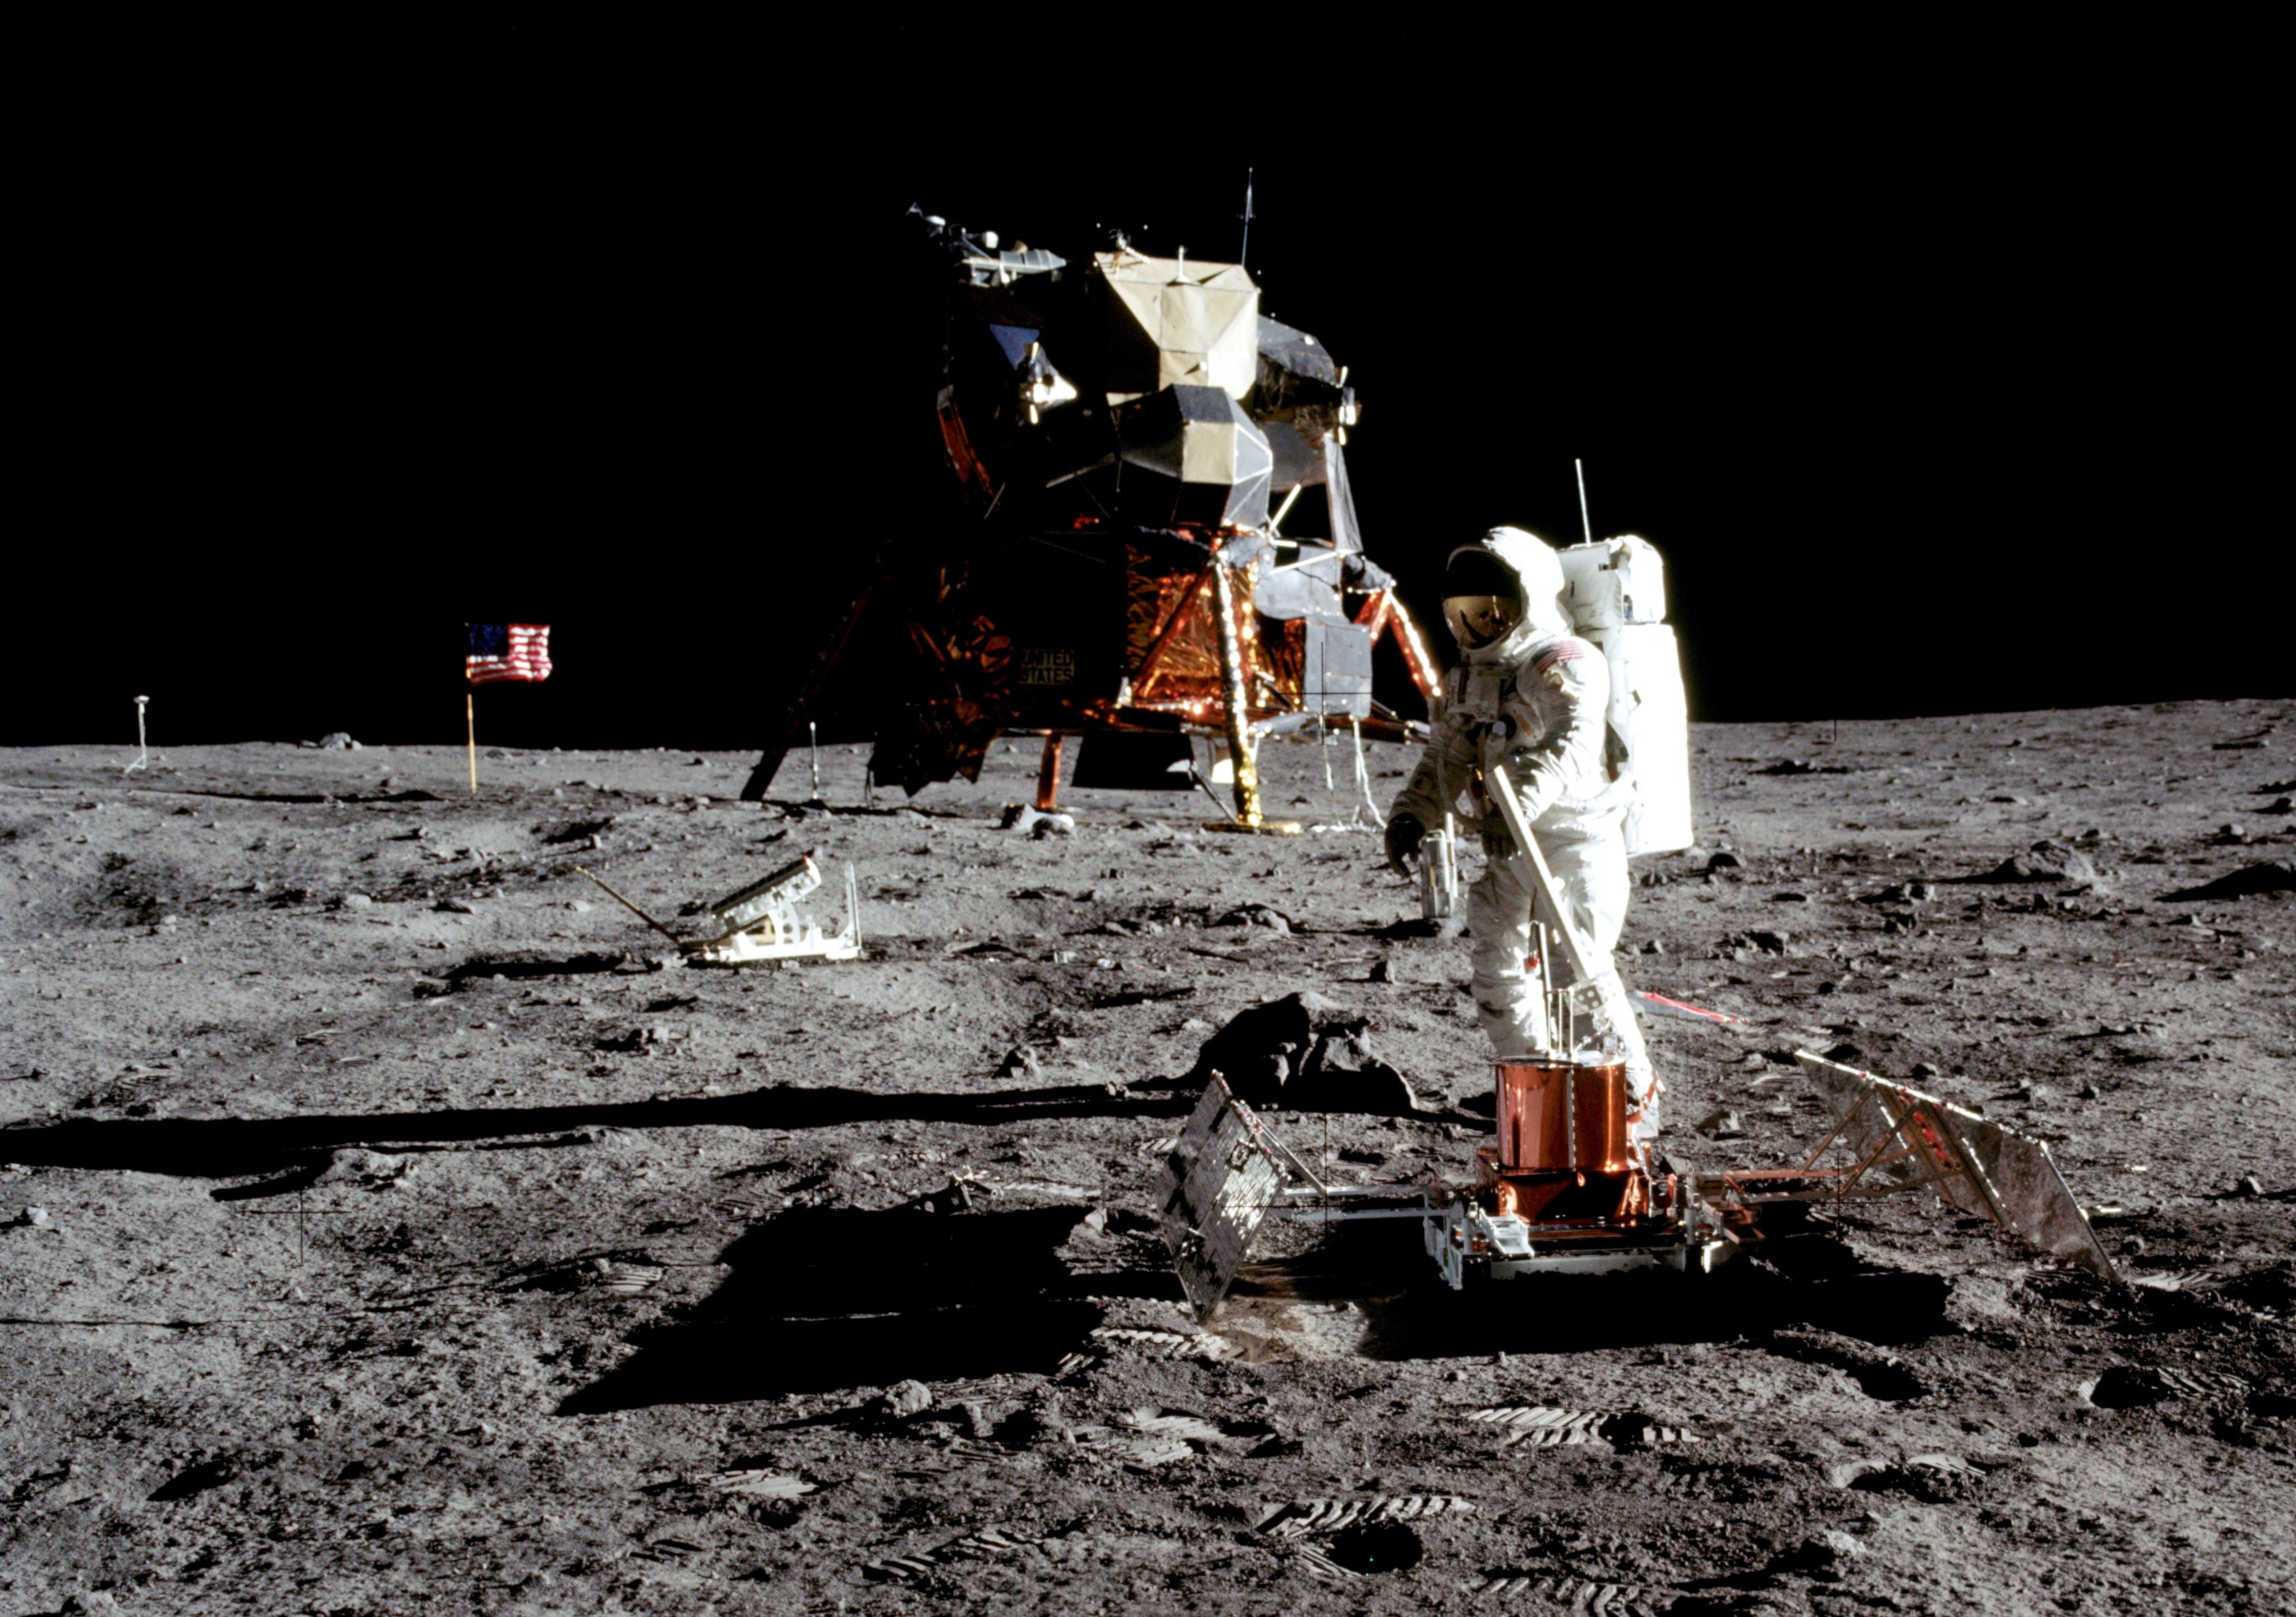 Why Aren't There Stars In The Moon Landing Photos? -Explained